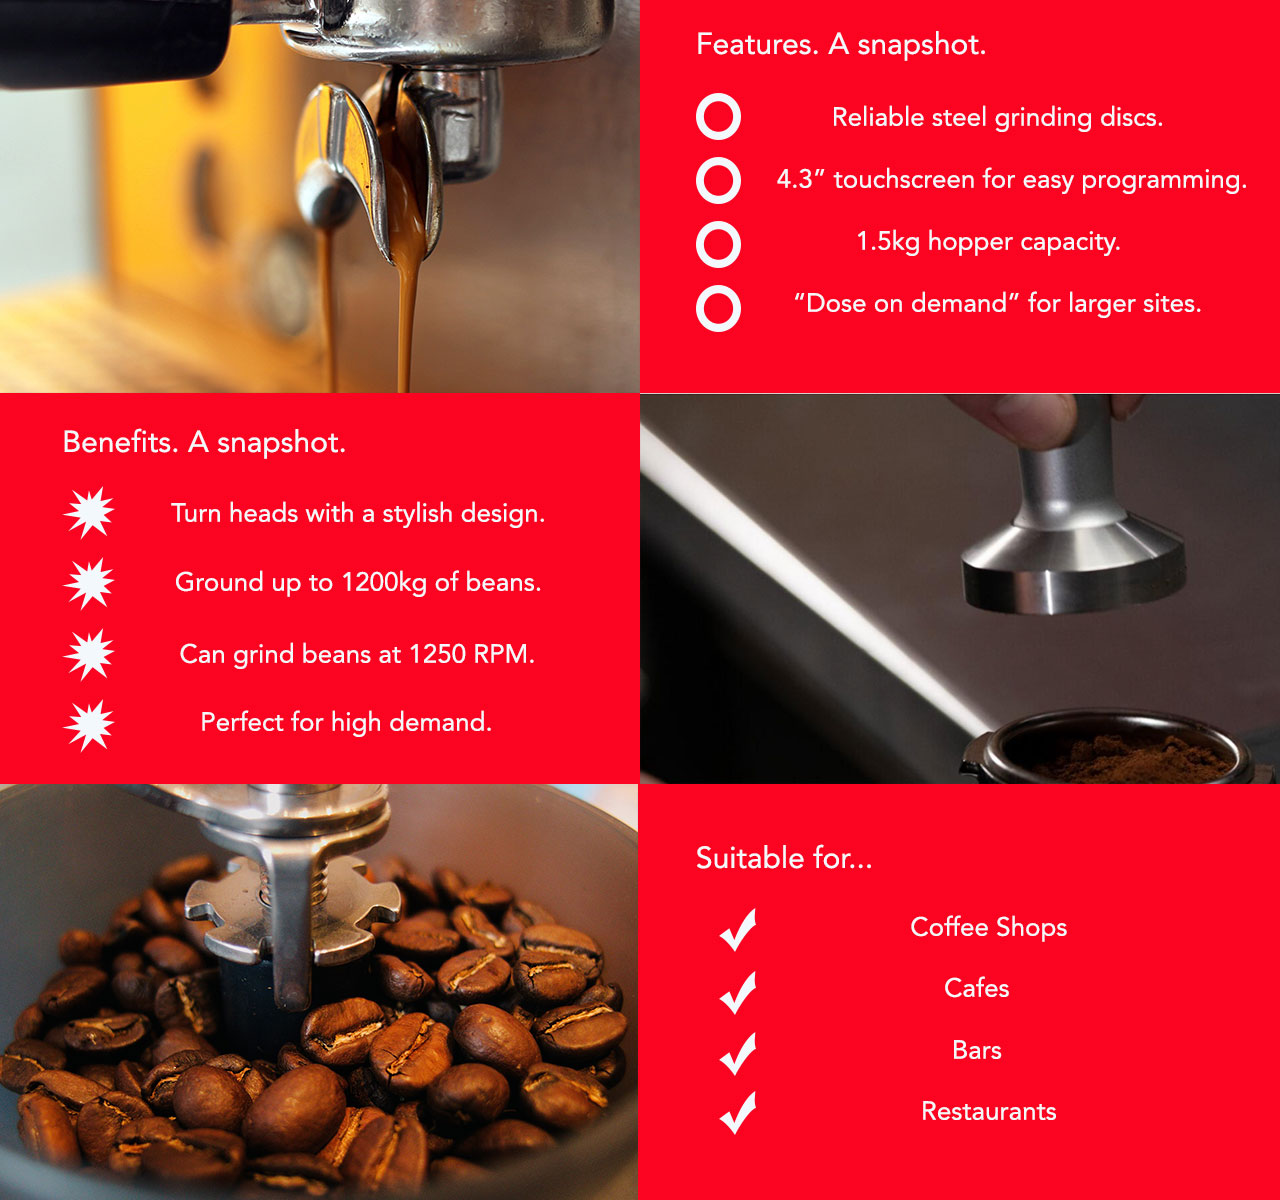 The Quality espresso Q10 coffee bean grinder offers advanced features for the modern day coffee shop or similar environment.